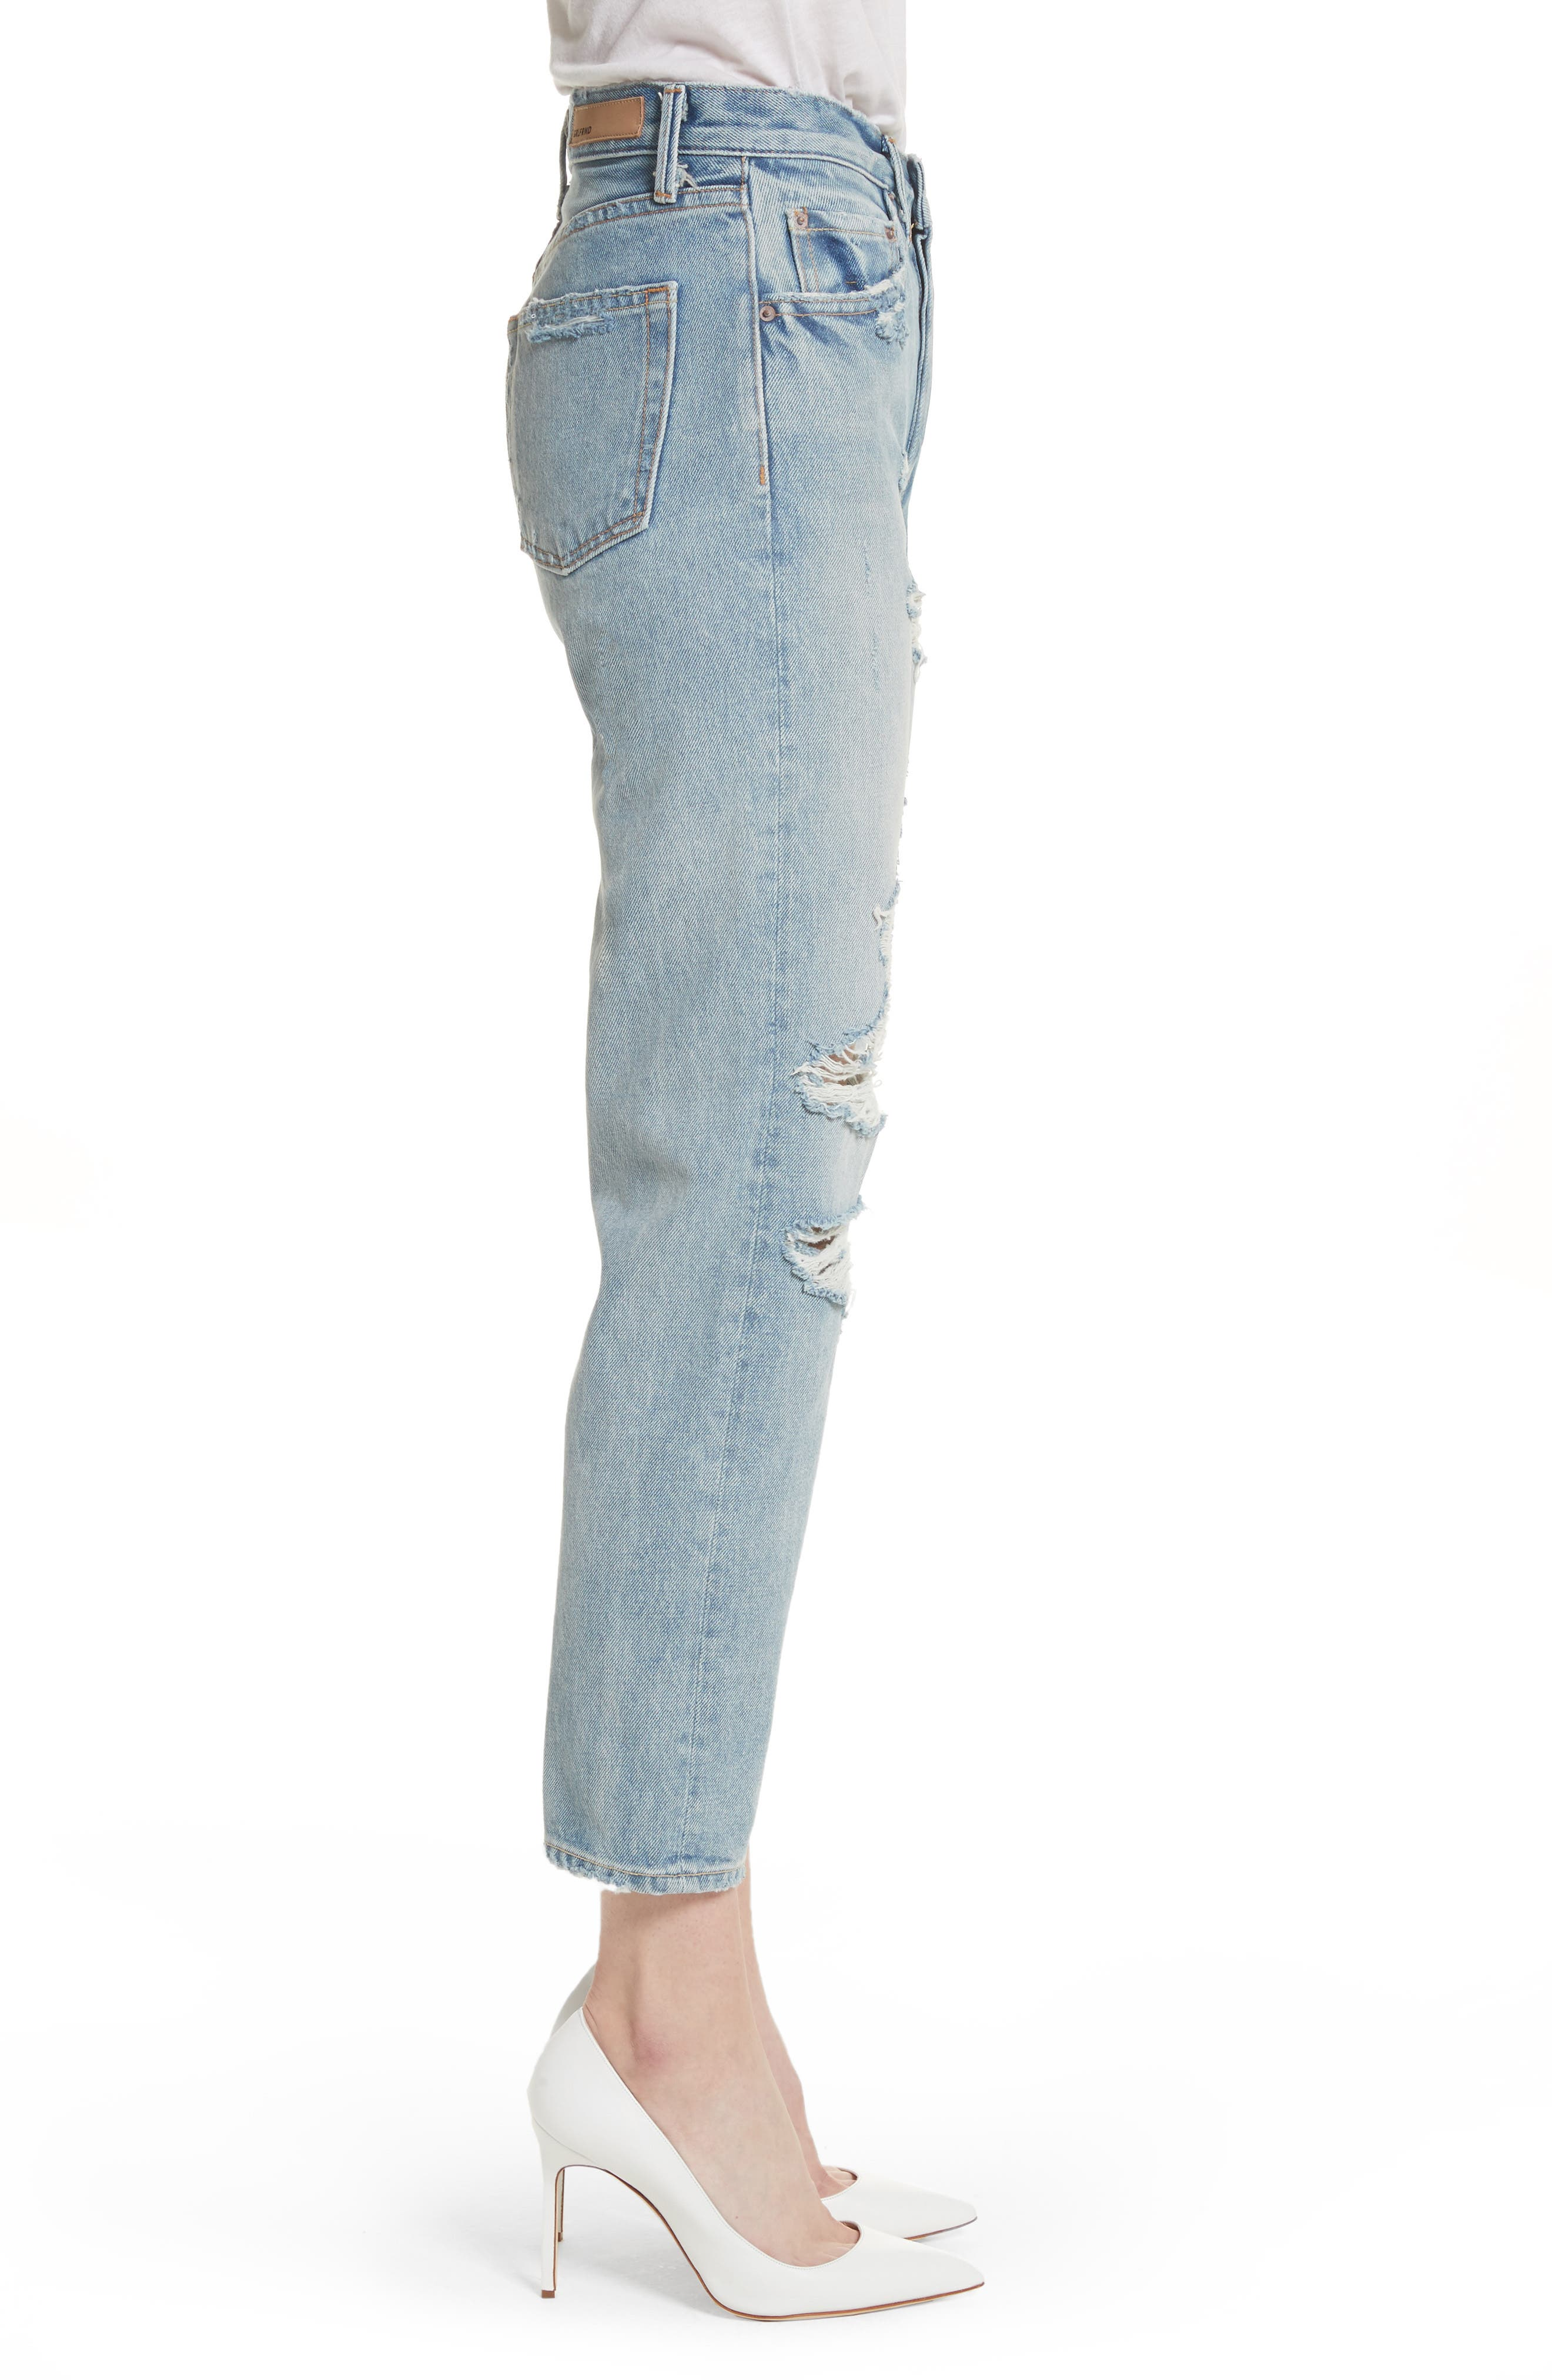 Helena Ripped Rigid High Waist Straight Jeans,                             Alternate thumbnail 3, color,                             491